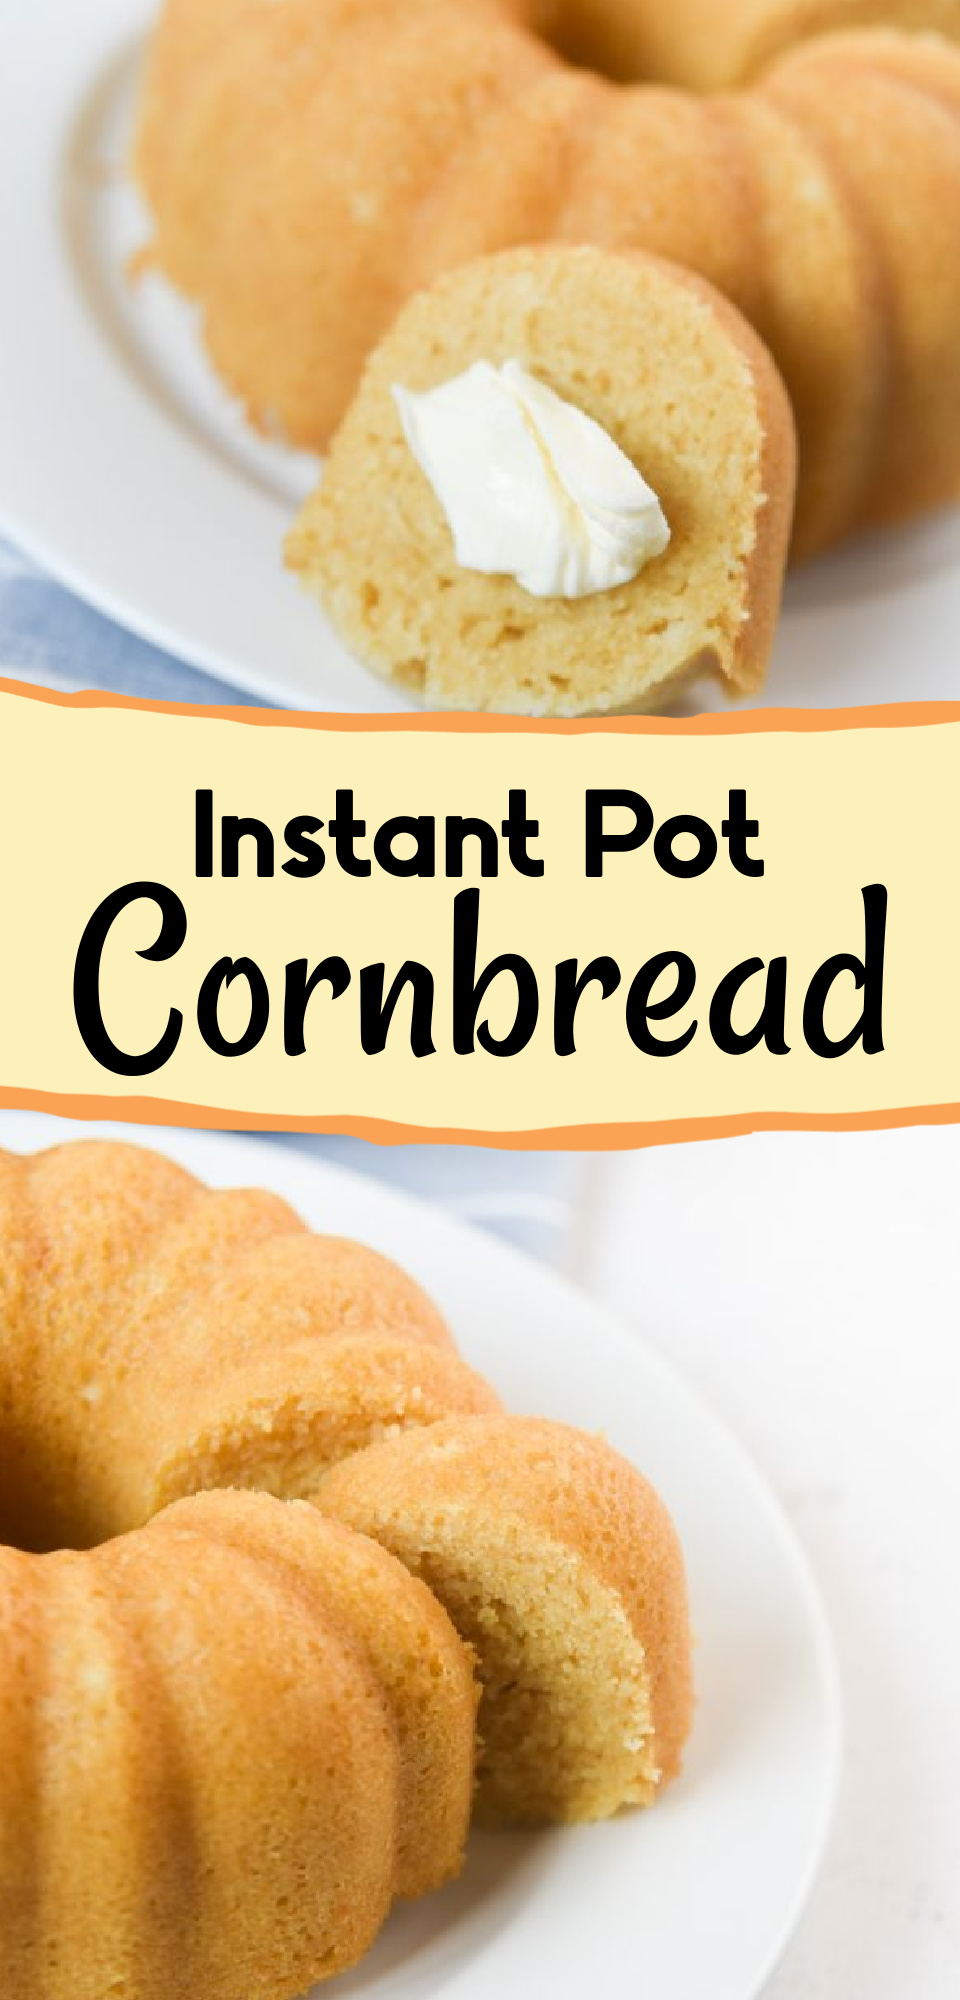 Did you know you can make moist buttermilk cornbread in an Instant Pot? It's the perfect side dish that complements ANY home-cooked meal. You'll love this Instant Pot Cornbread recipe! via @simplysidedishes89